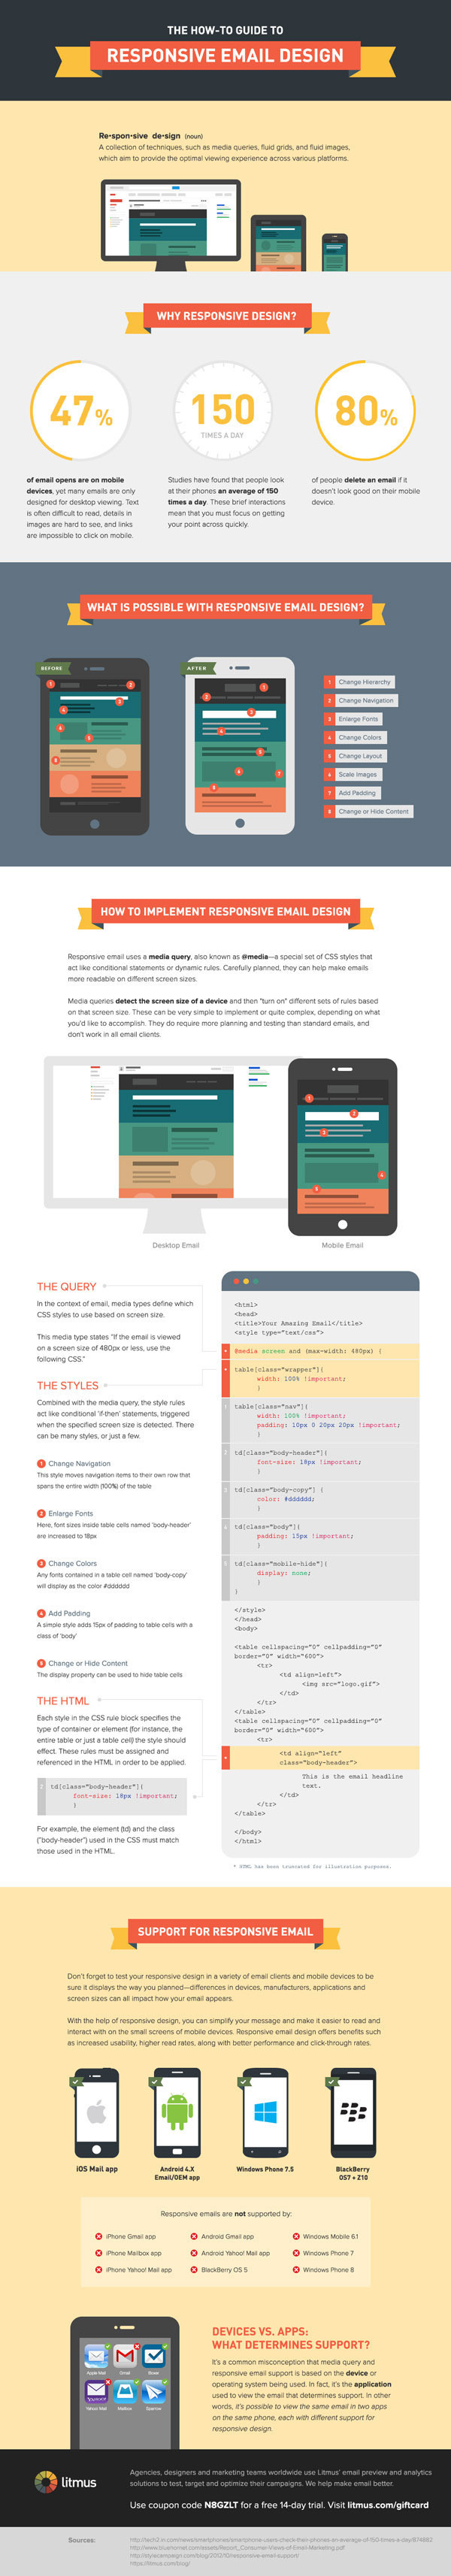 The How To Guide to Responsive Email Design [Infographic] #infographic